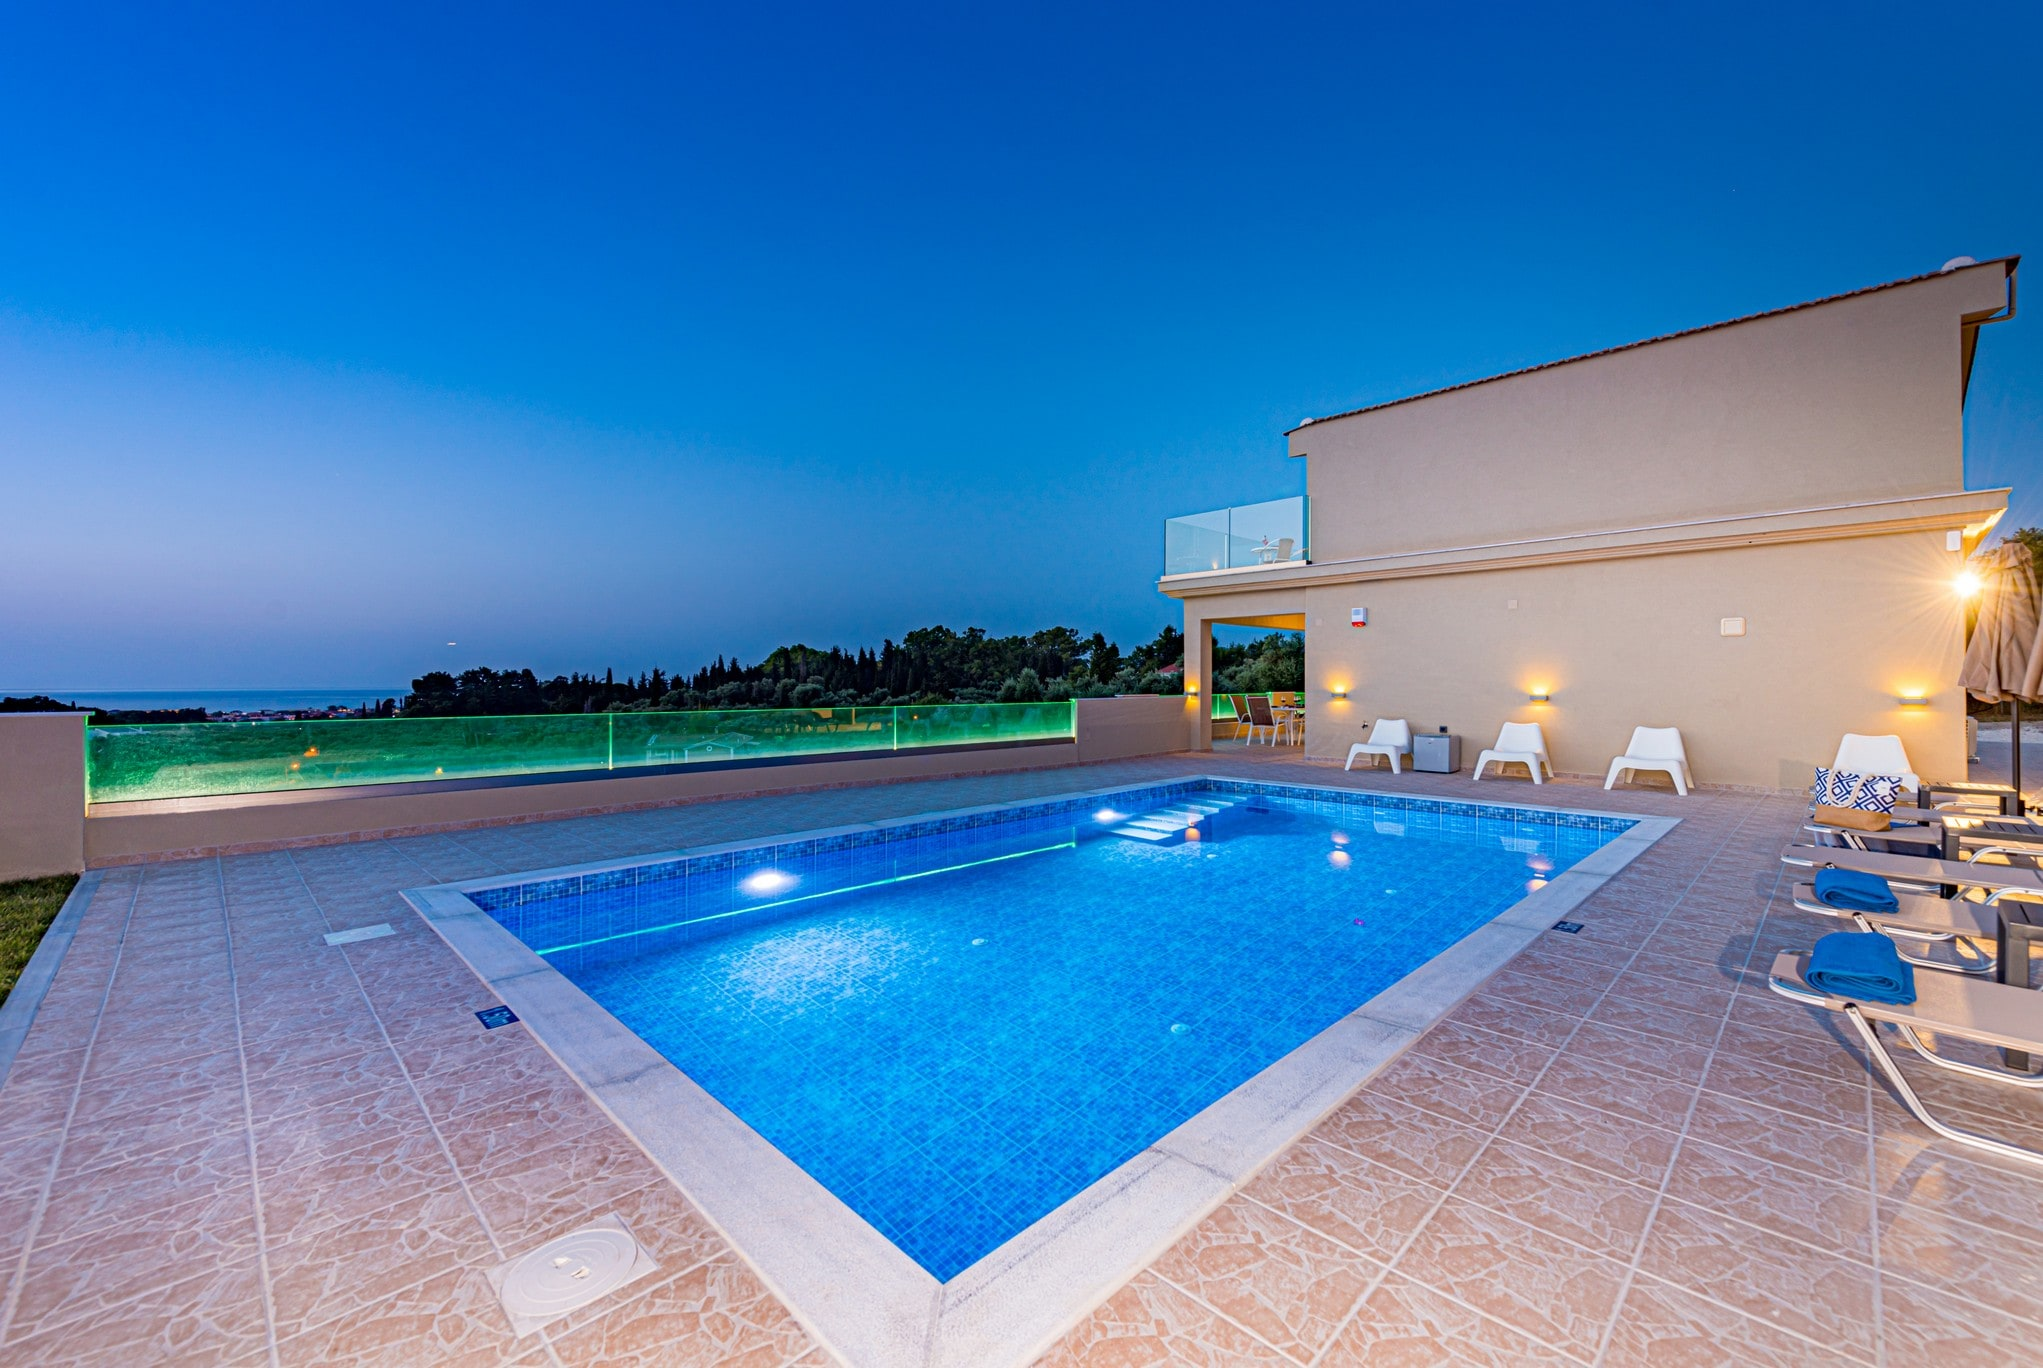 Property Image 2 - Tranquil Luxury Villa with Private Pool